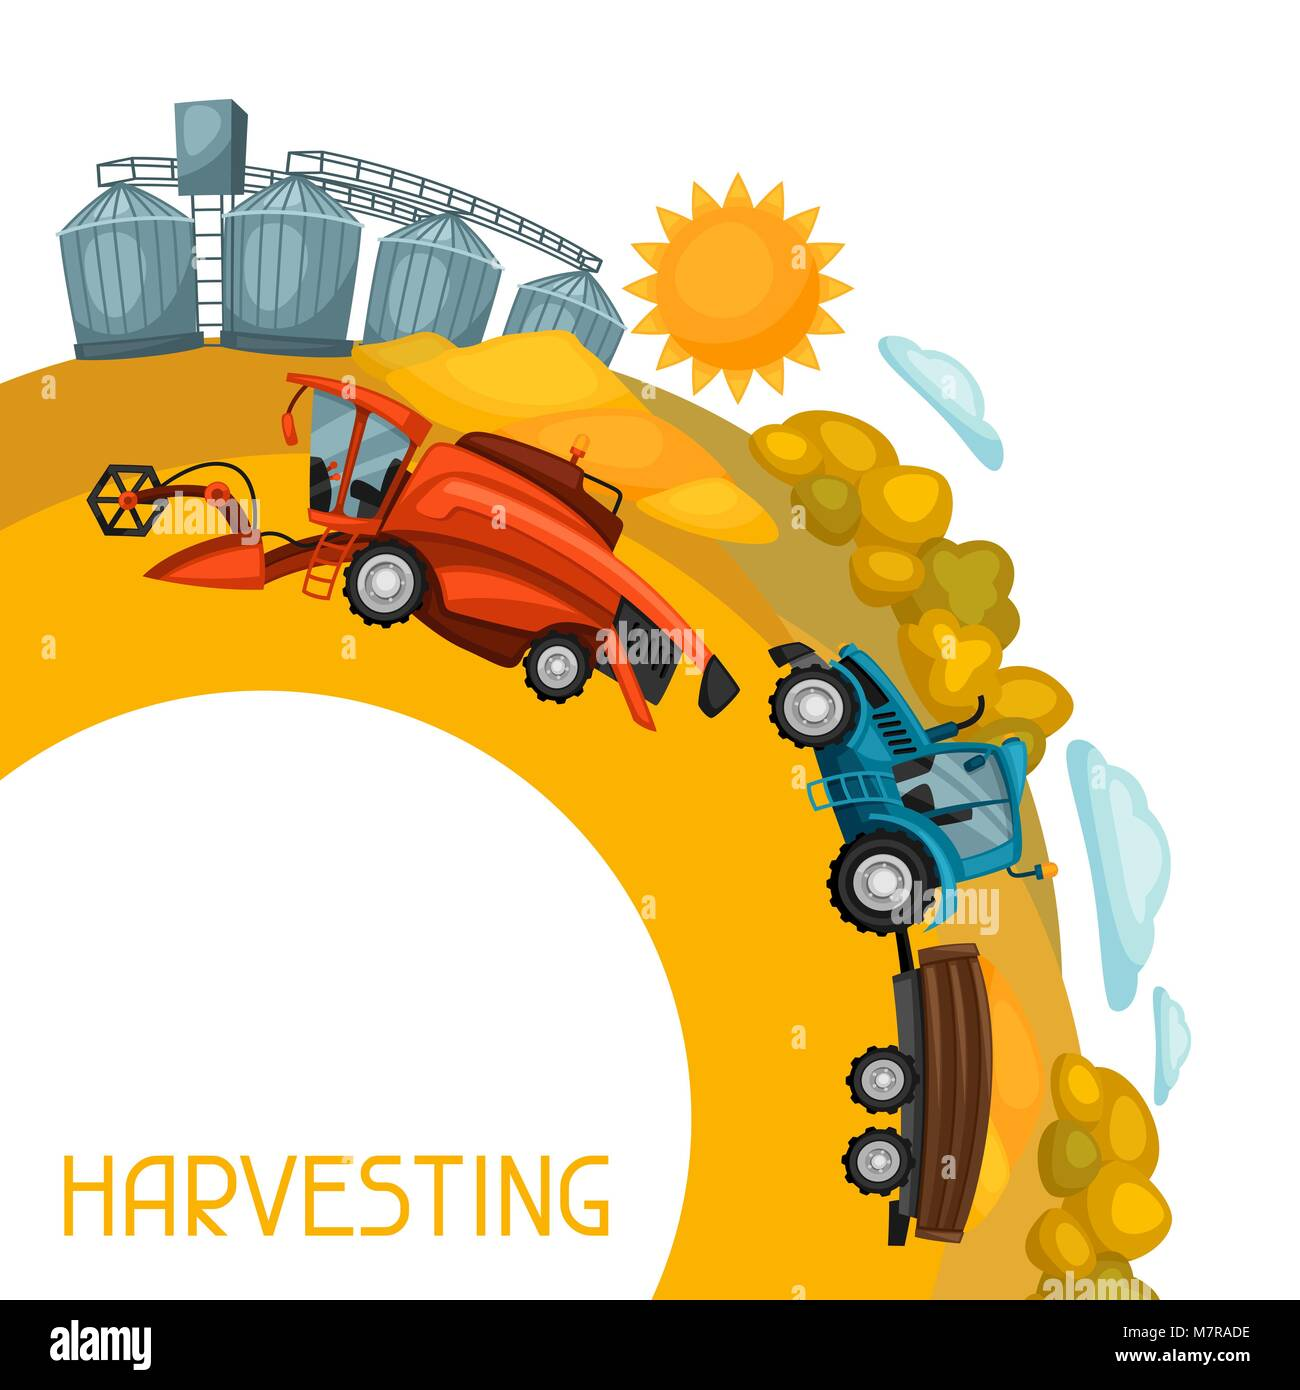 Harvesting background. Combine harvester, tractor and granary on wheat field. Agricultural illustration farm rural - Stock Vector